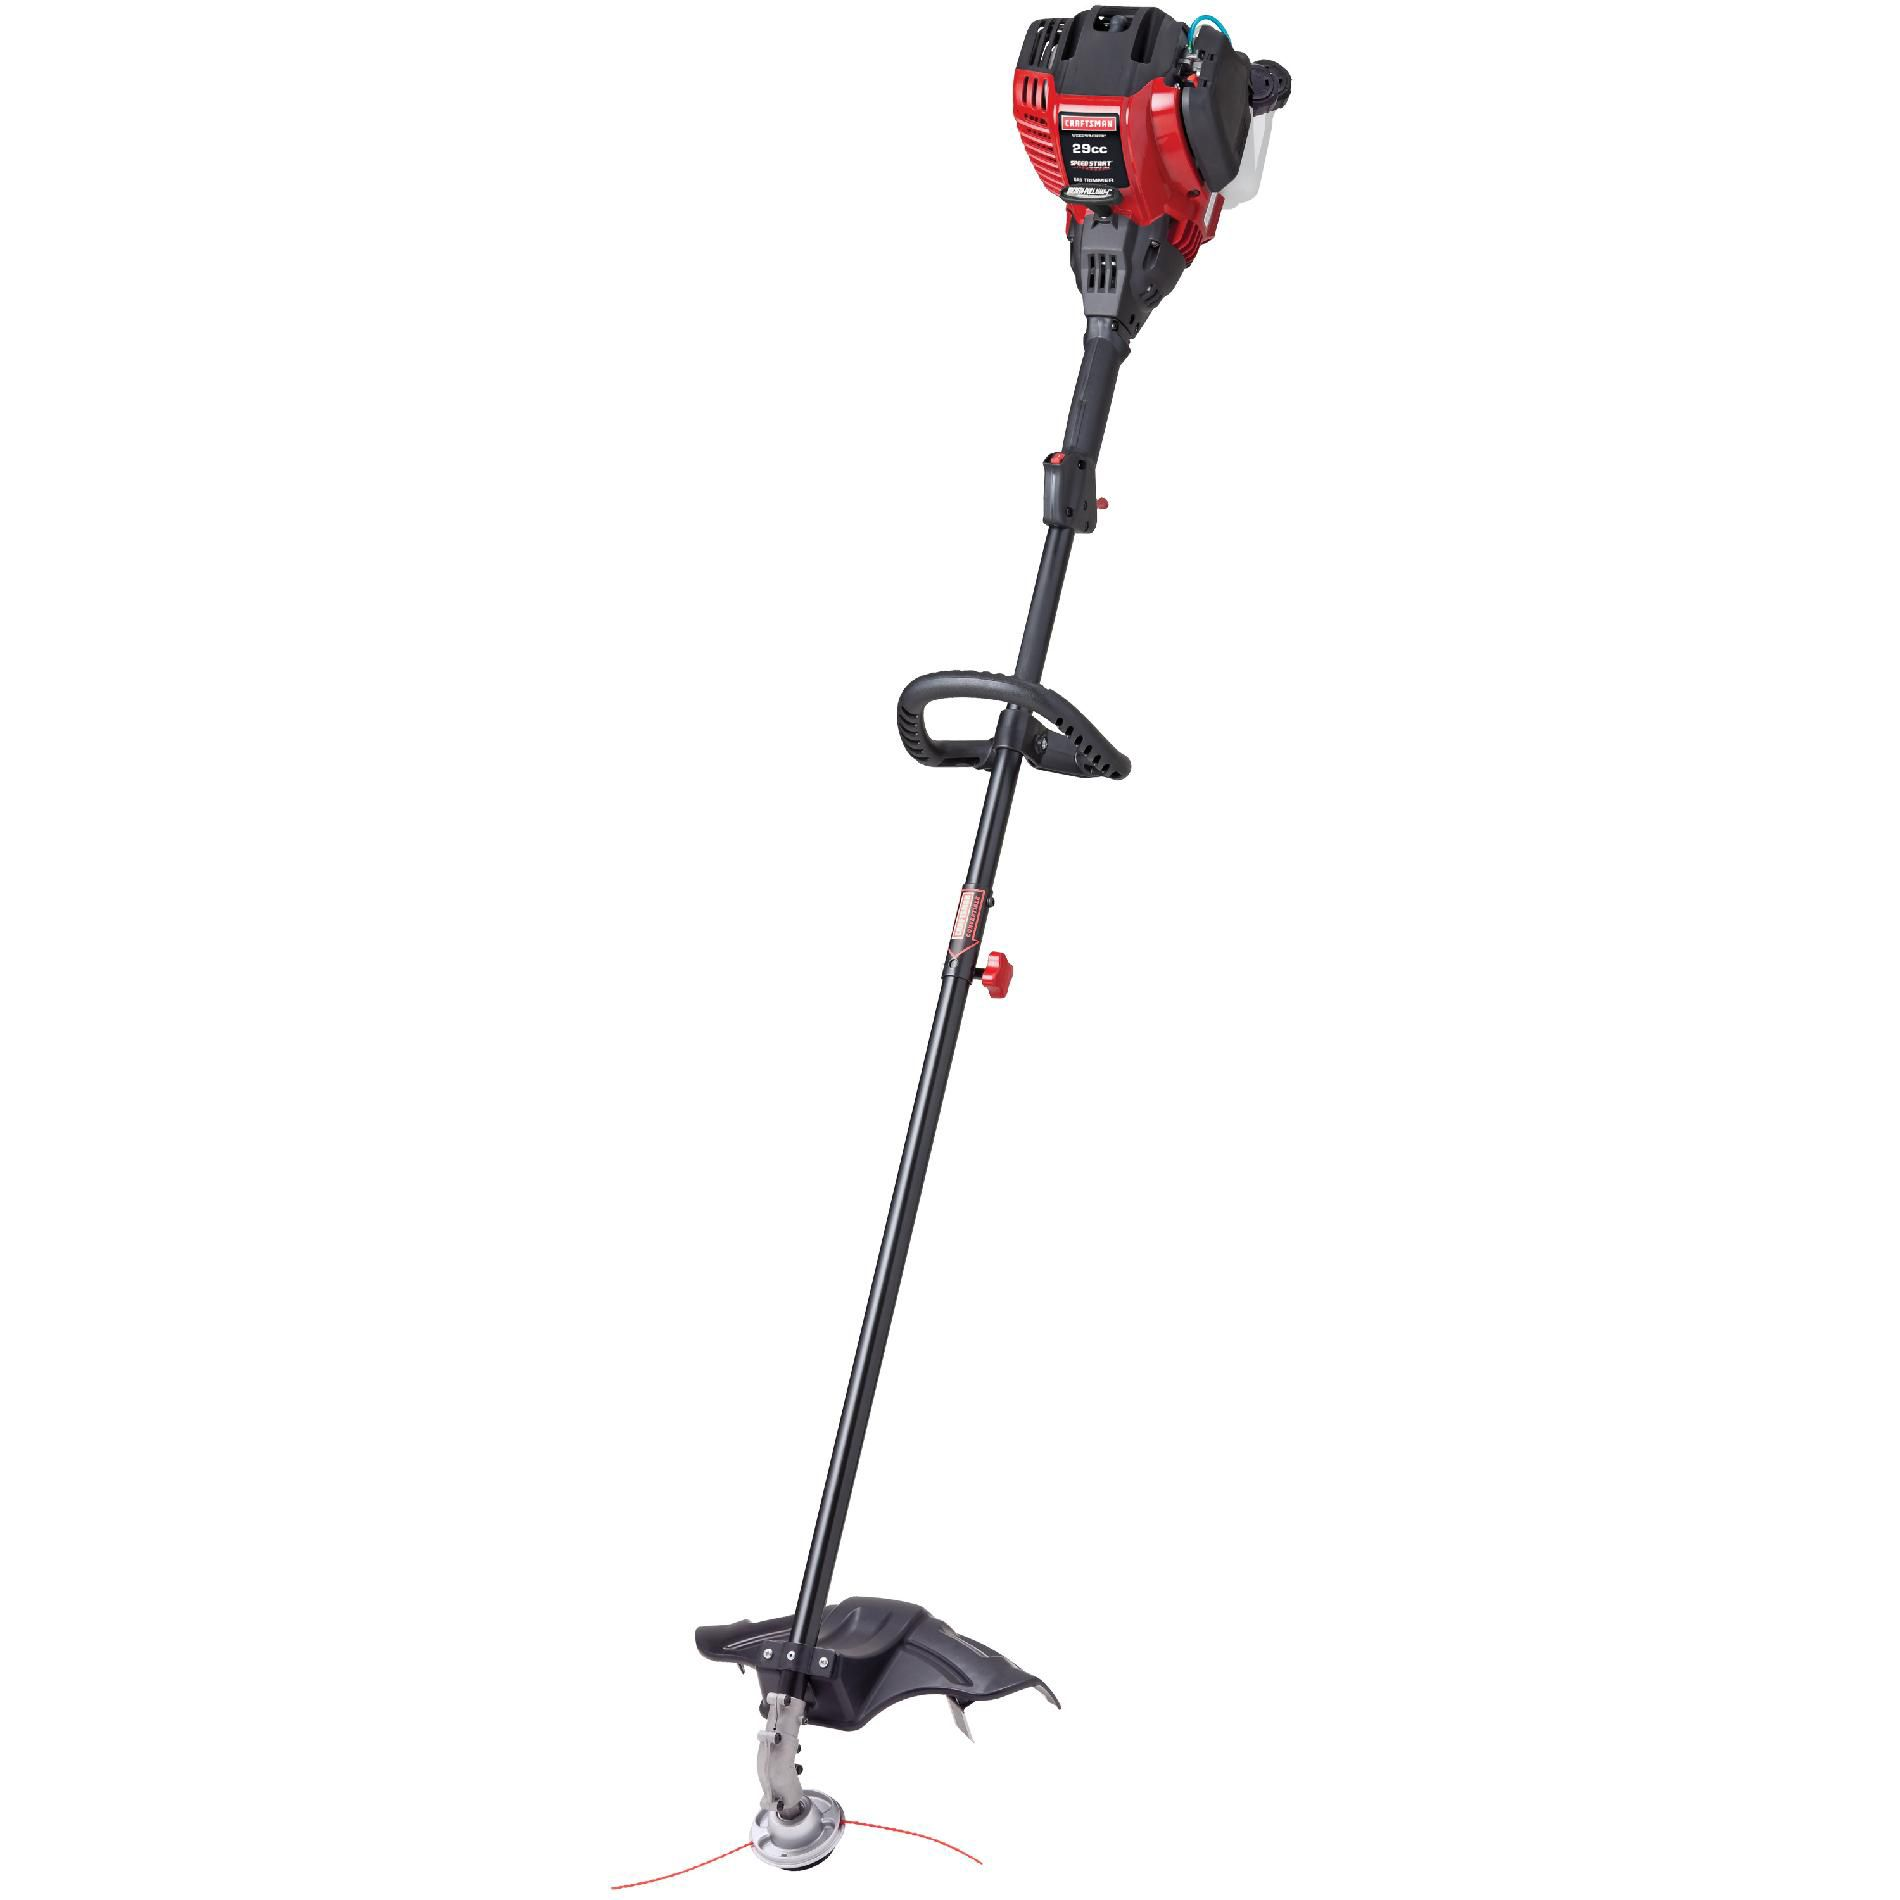 Craftsman 29cc* 4-Cycle WeedWacker™ Straight Shaft Gas